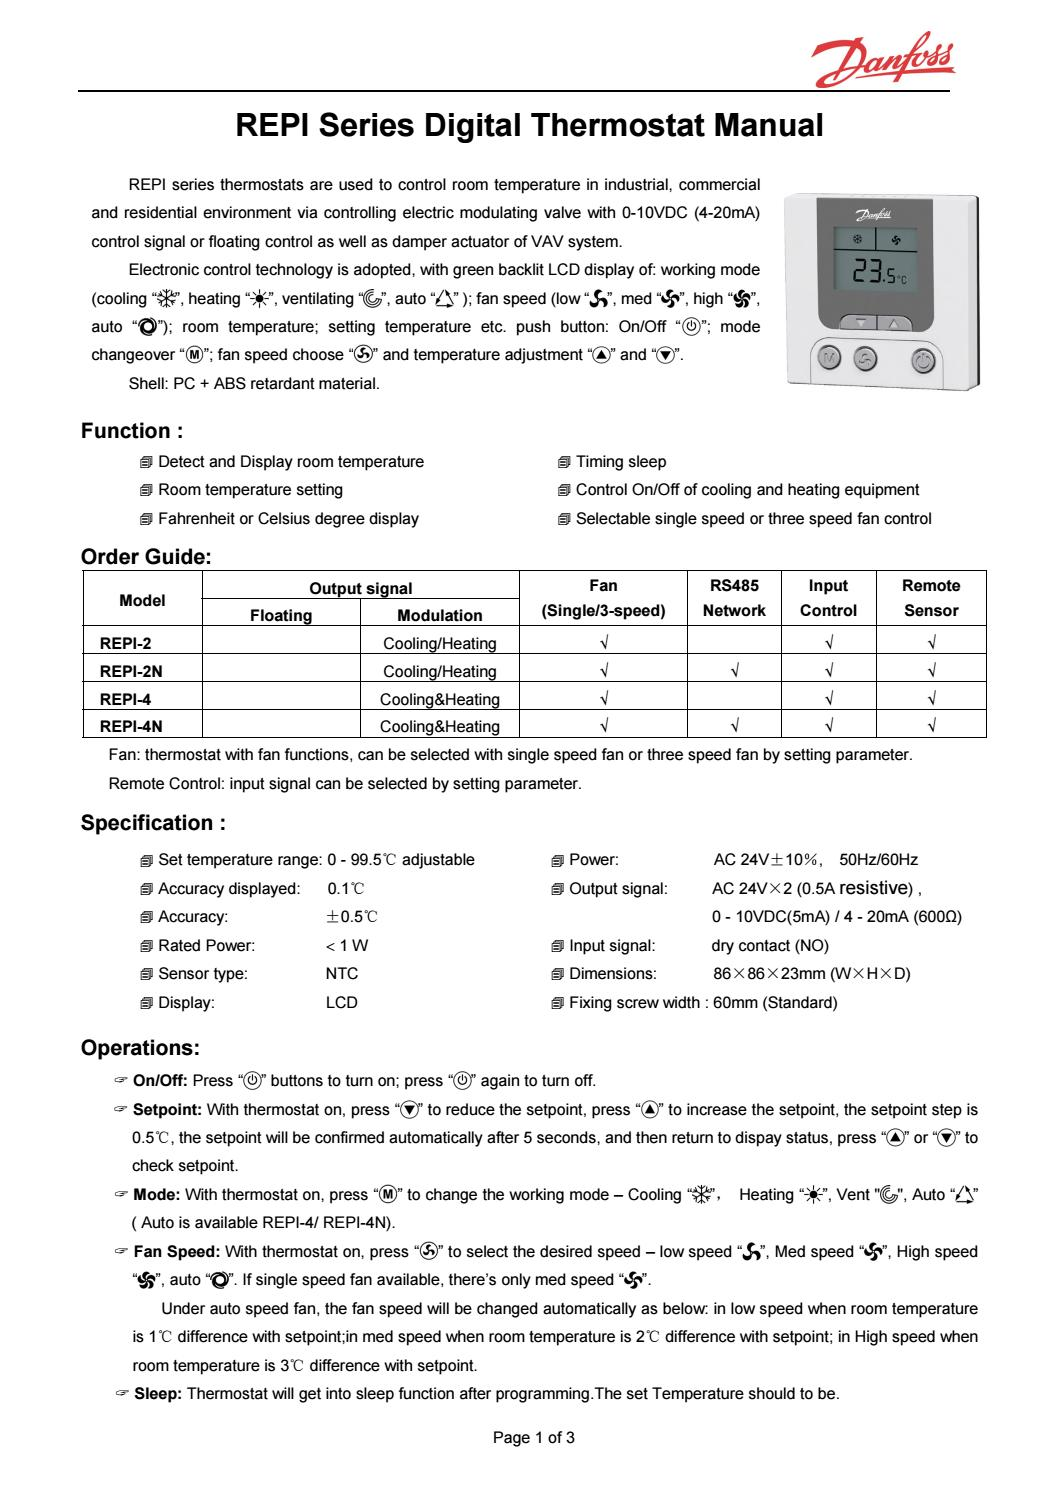 Repi Digital Thermostat With Modulating Output Danfoss By Marcelo M Room Wiring Diagram Quaiotti Issuu